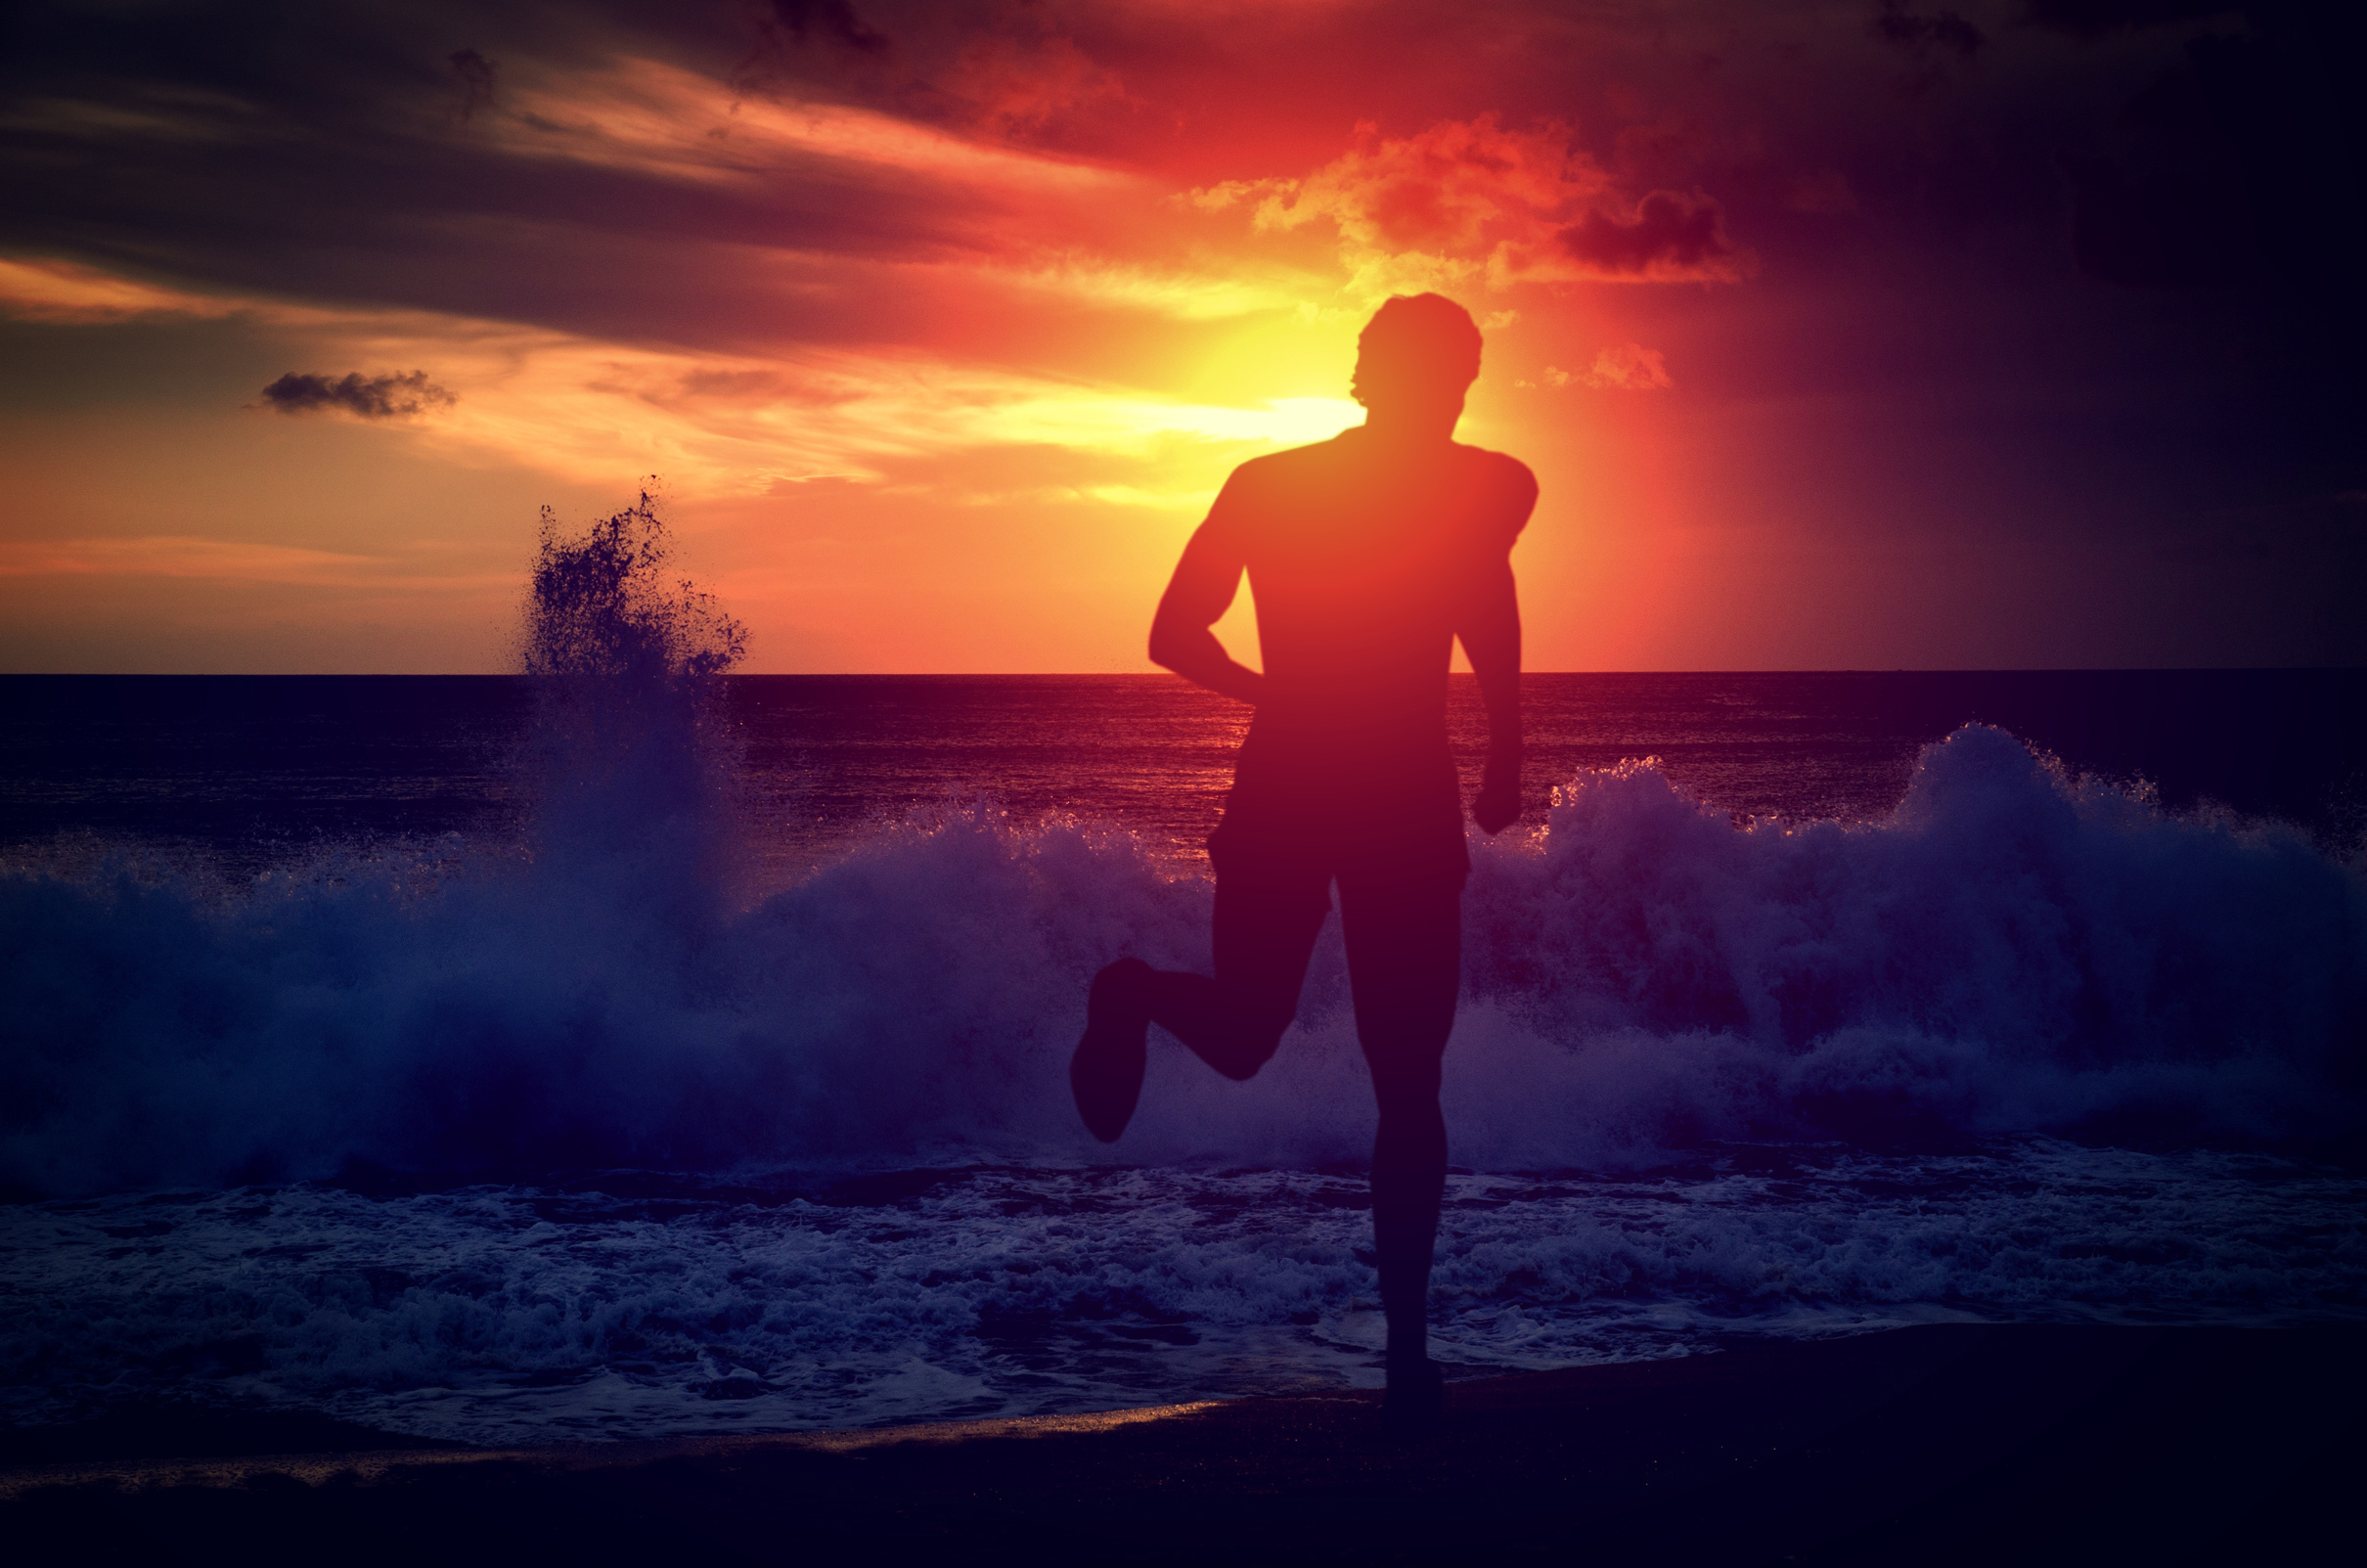 Man running on the beach at sunset, Red, Recreation, Rally, Person, HQ Photo